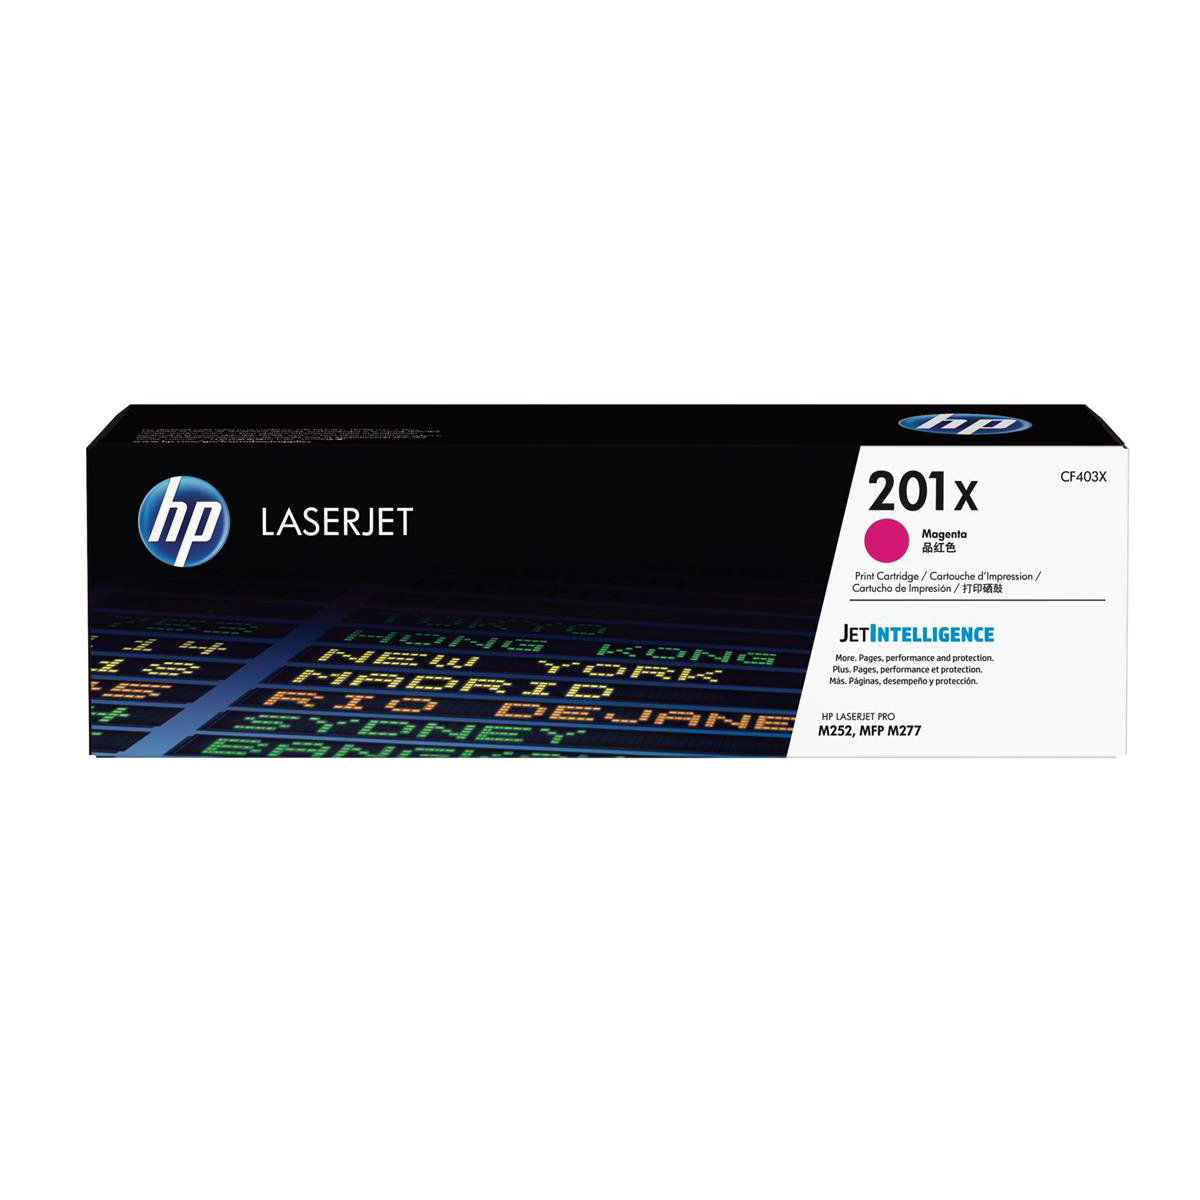 Image for HP 201X Laserjet Toner Cartridge High Yield Page Life 2300ppMagenta Ref CF403X